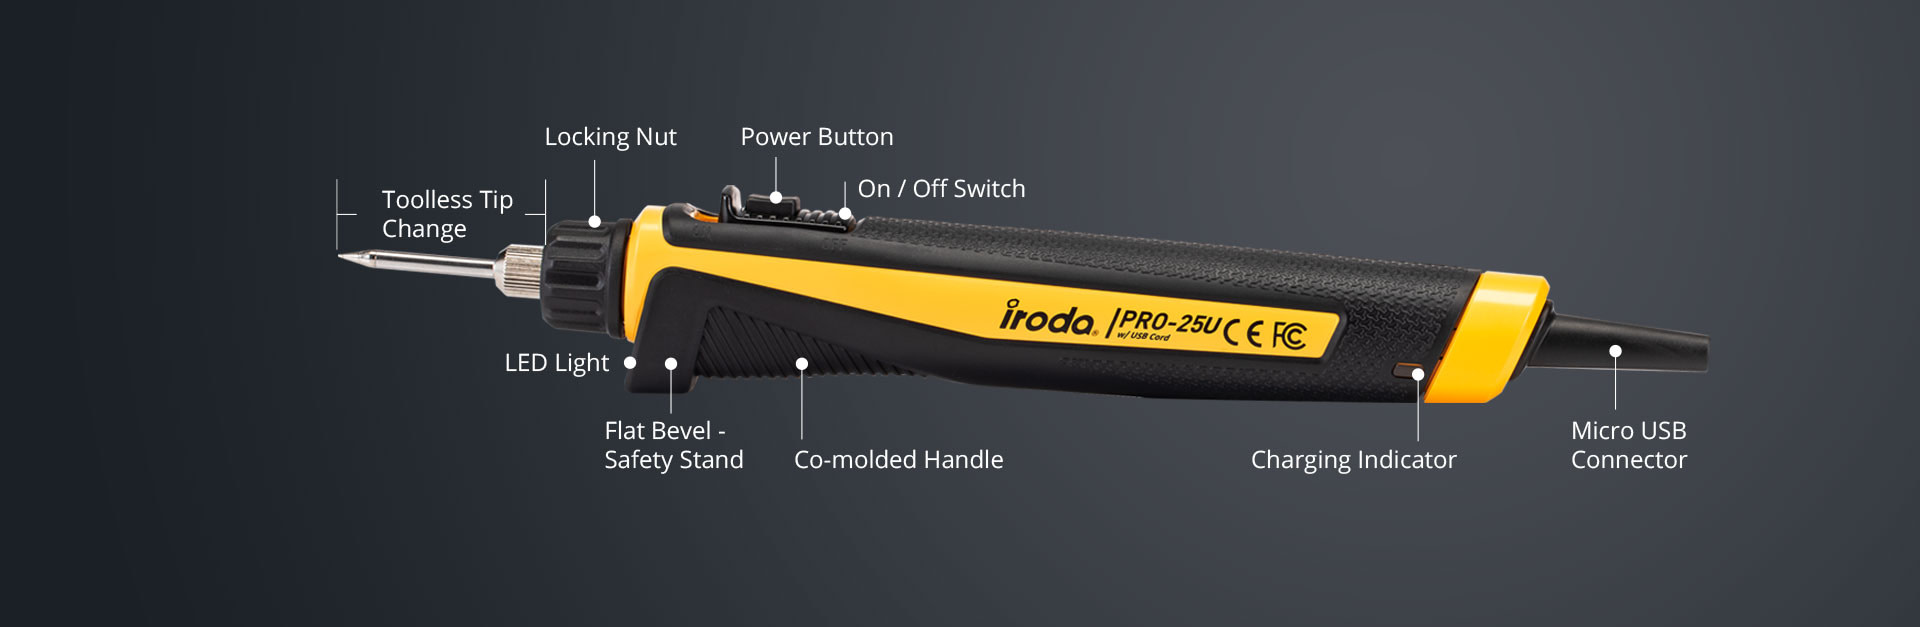 Main key features and description of PRO-25U Professional USB Cordless Soldering Iron from Pro-Iroda